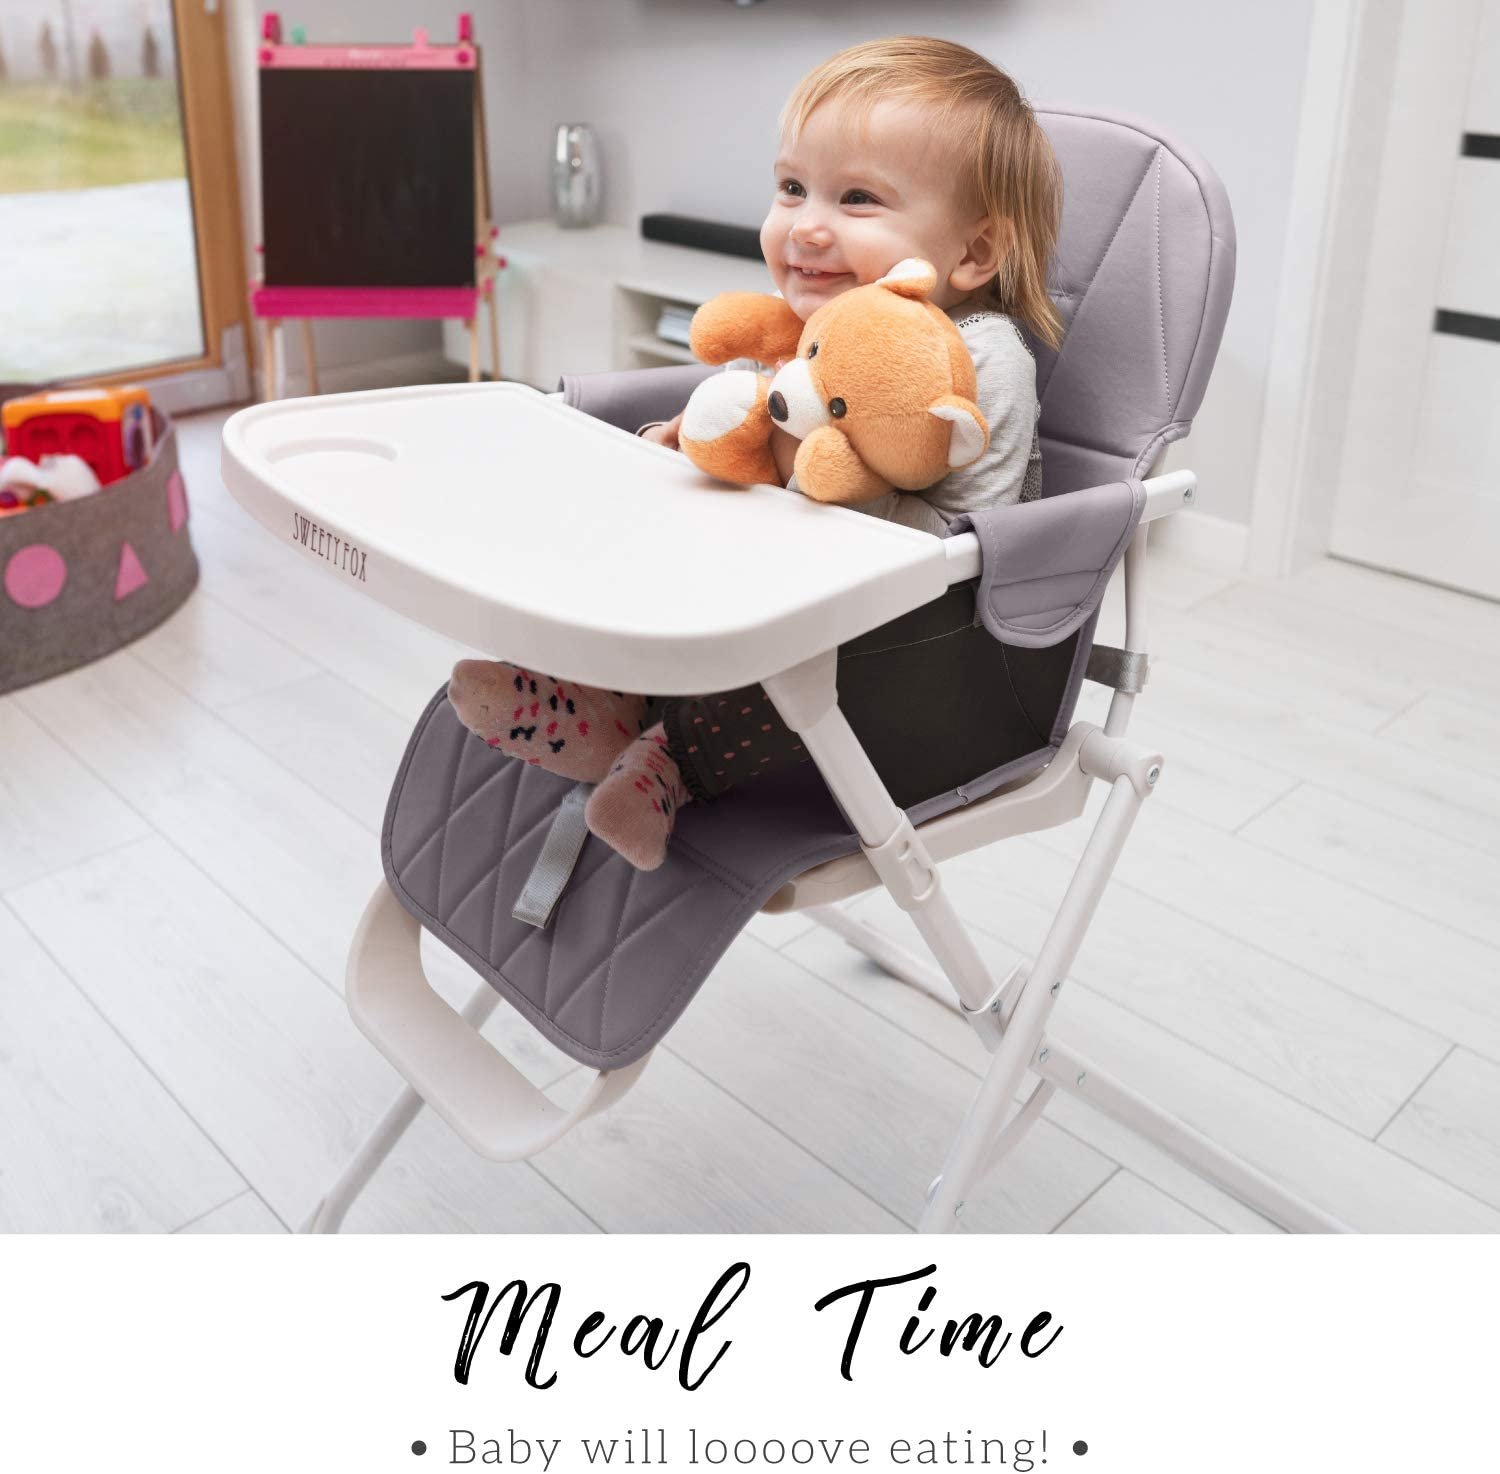 Compact Stylish Baby Seat with Cushion for Comfort Adjustable and Foldable Baby High Chair Highchair for Babies and Children with Removable BPA-Free Tray 5-Point Harness Baby Highchairs